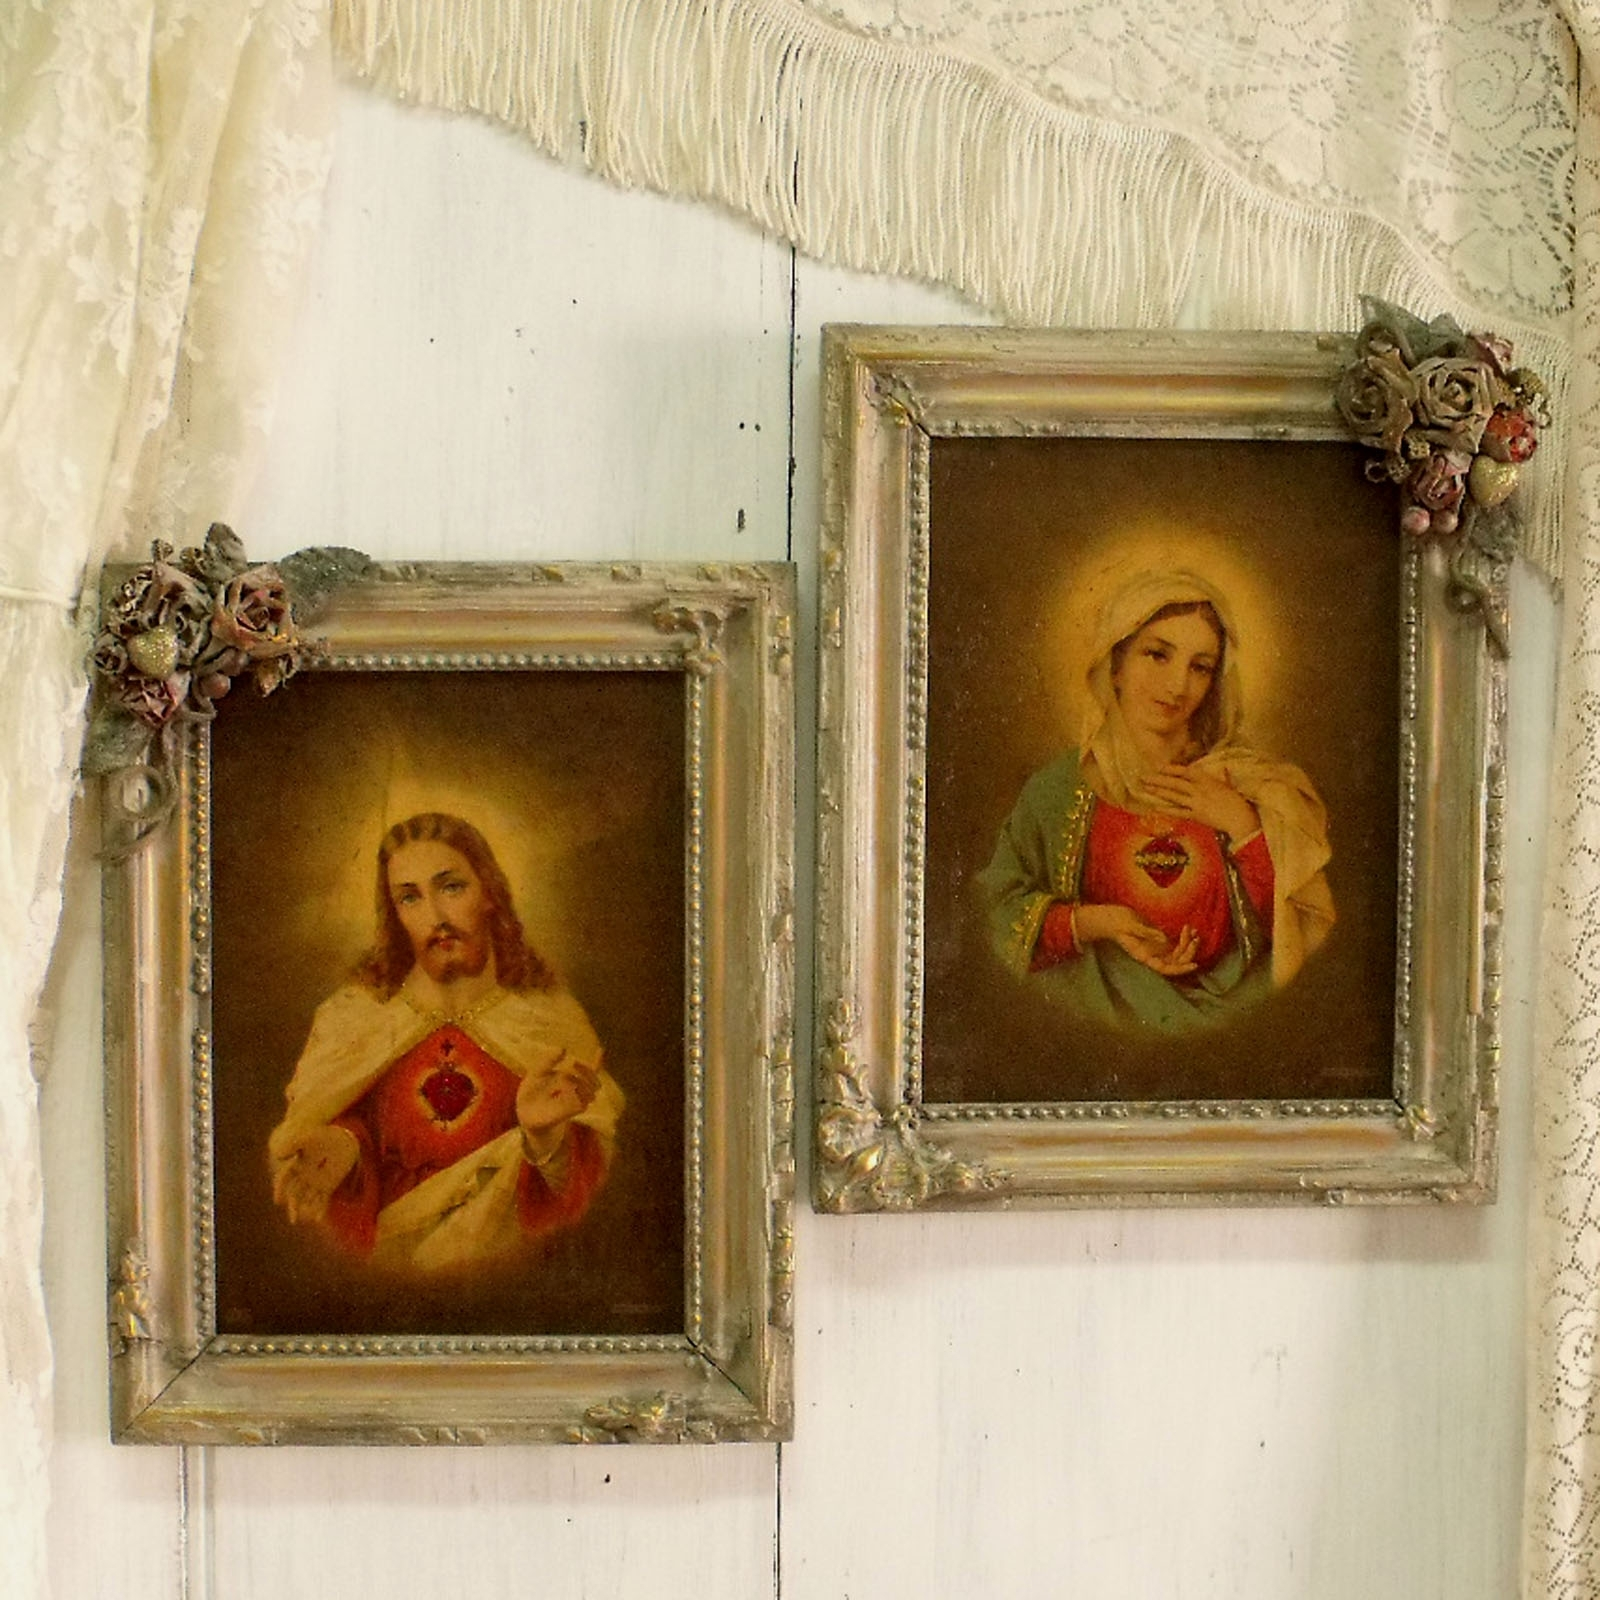 Vintage Jesus Virgin Mary Textured Prints Framed Pair | Virgin Intended For Most Up To Date Shabby Chic Framed Art Prints (Gallery 14 of 15)